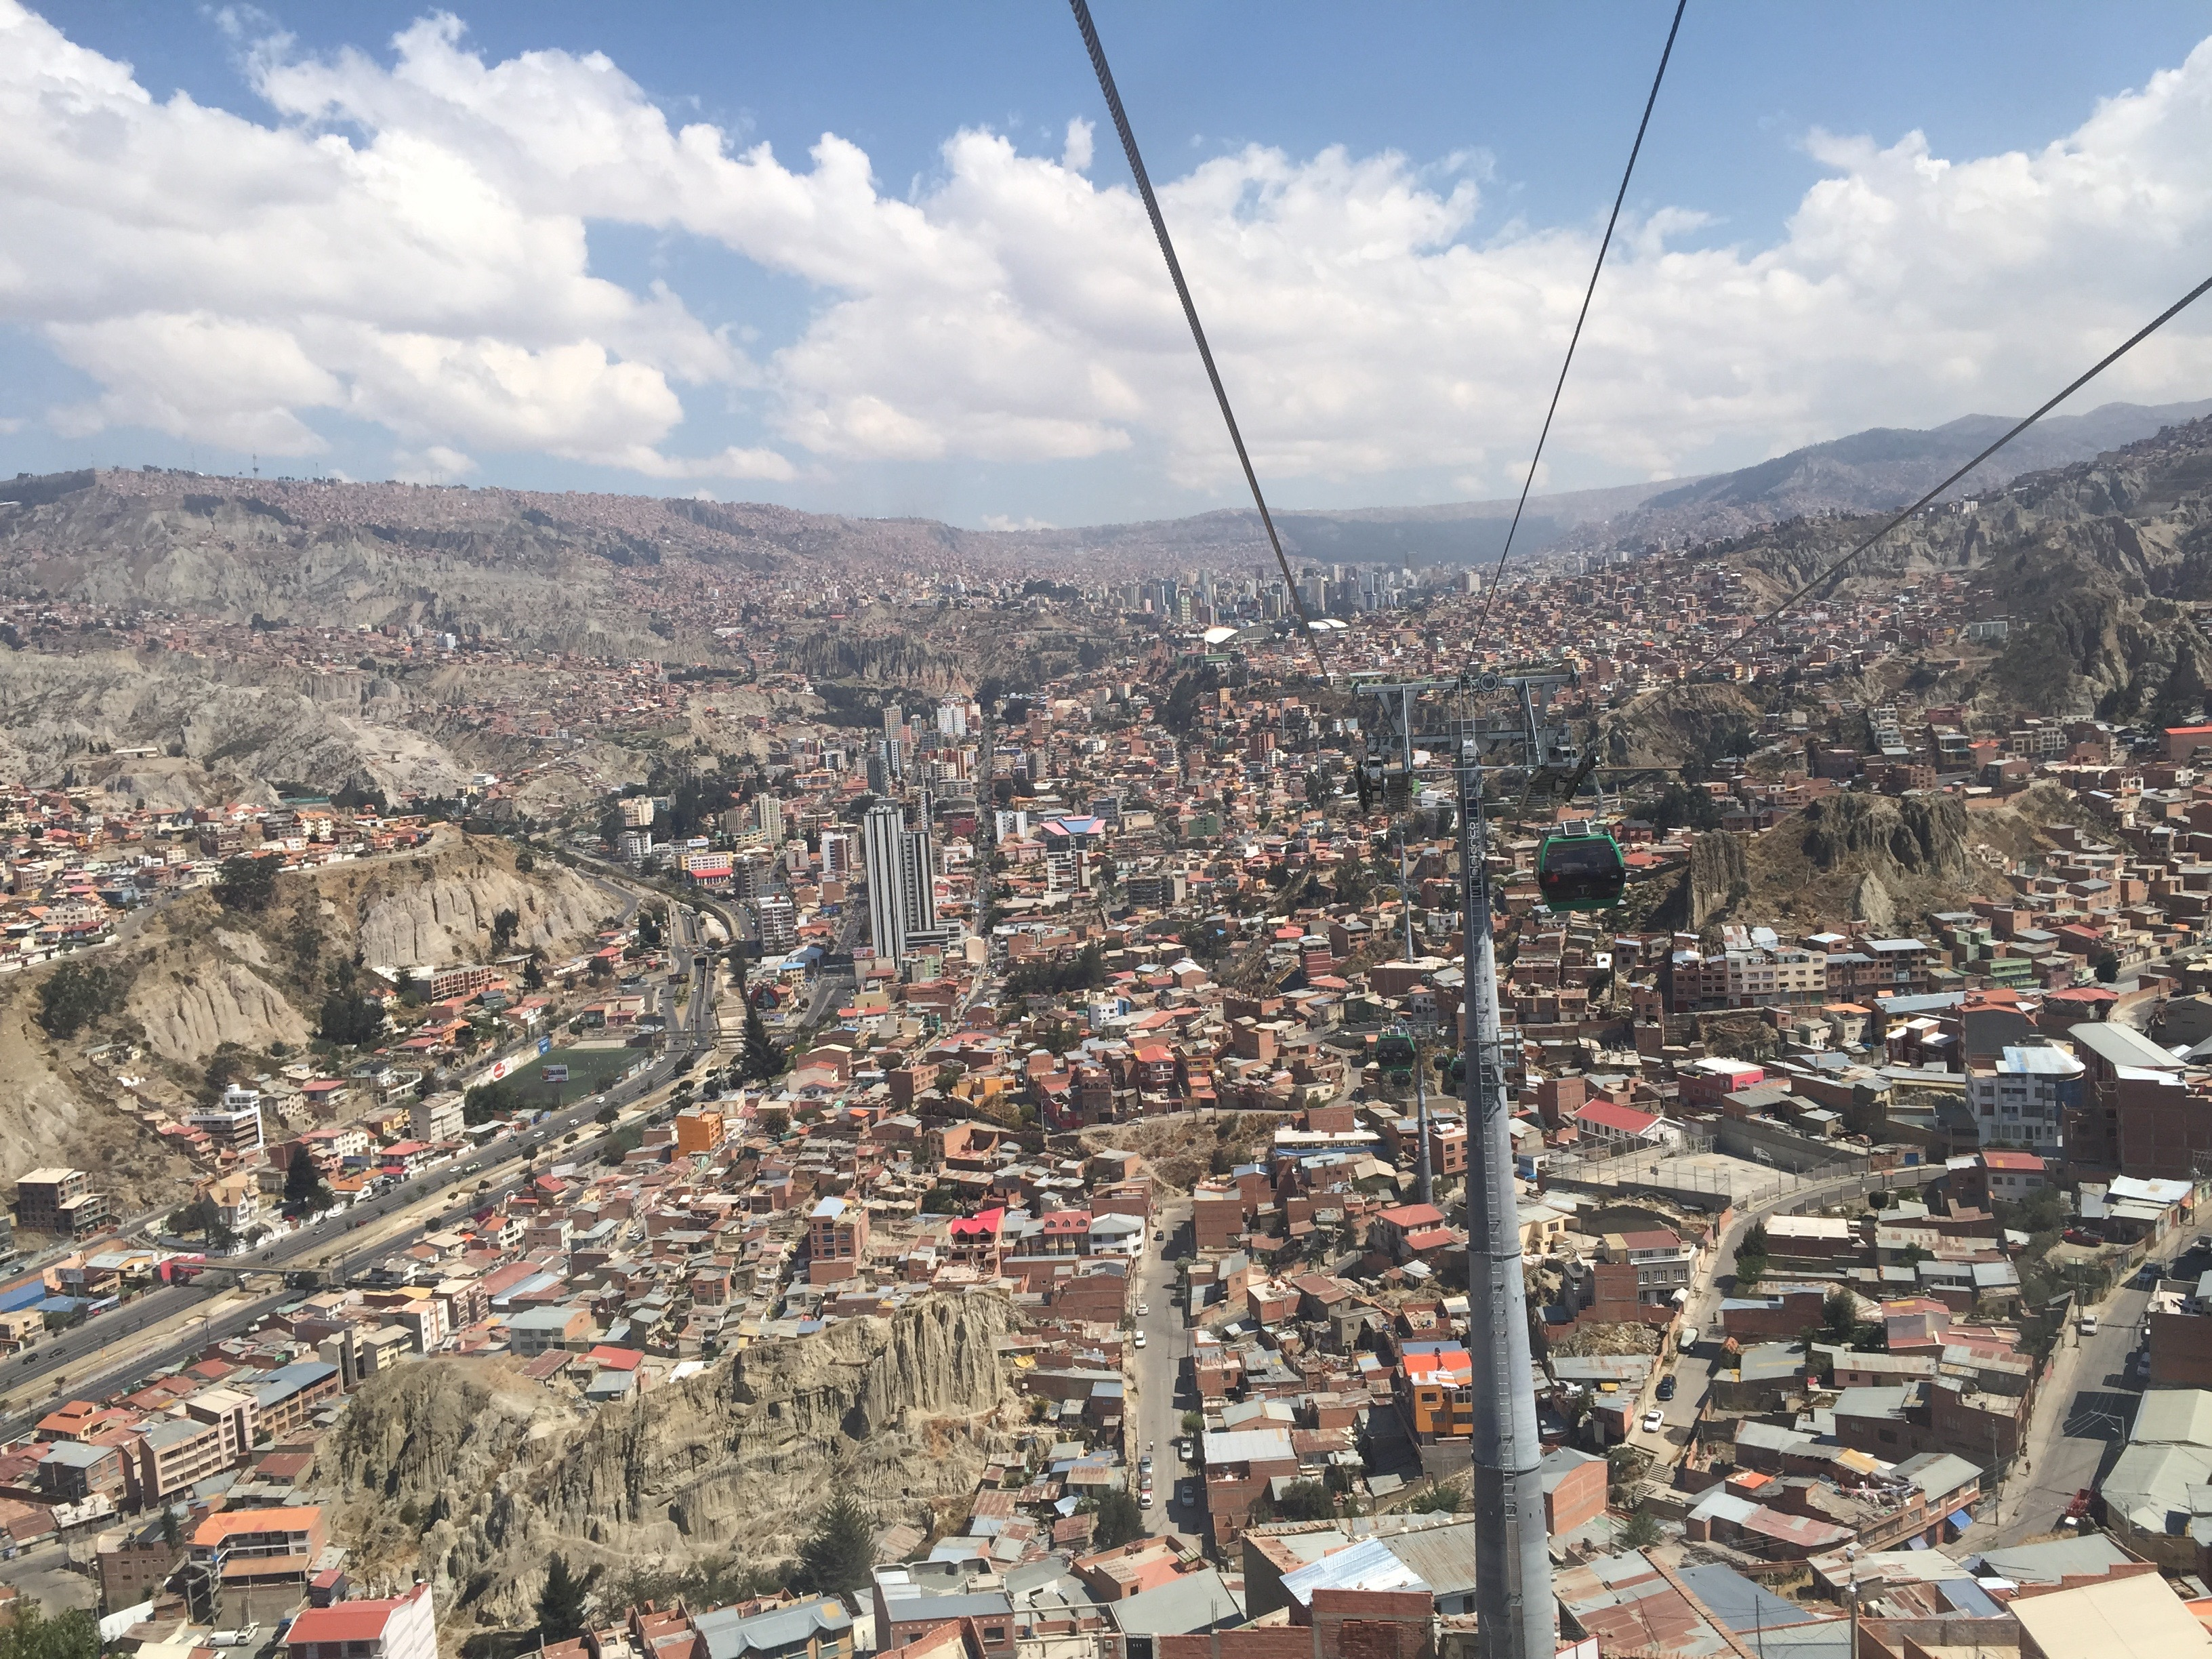 the view from mi teleferico la paz bolivia green line